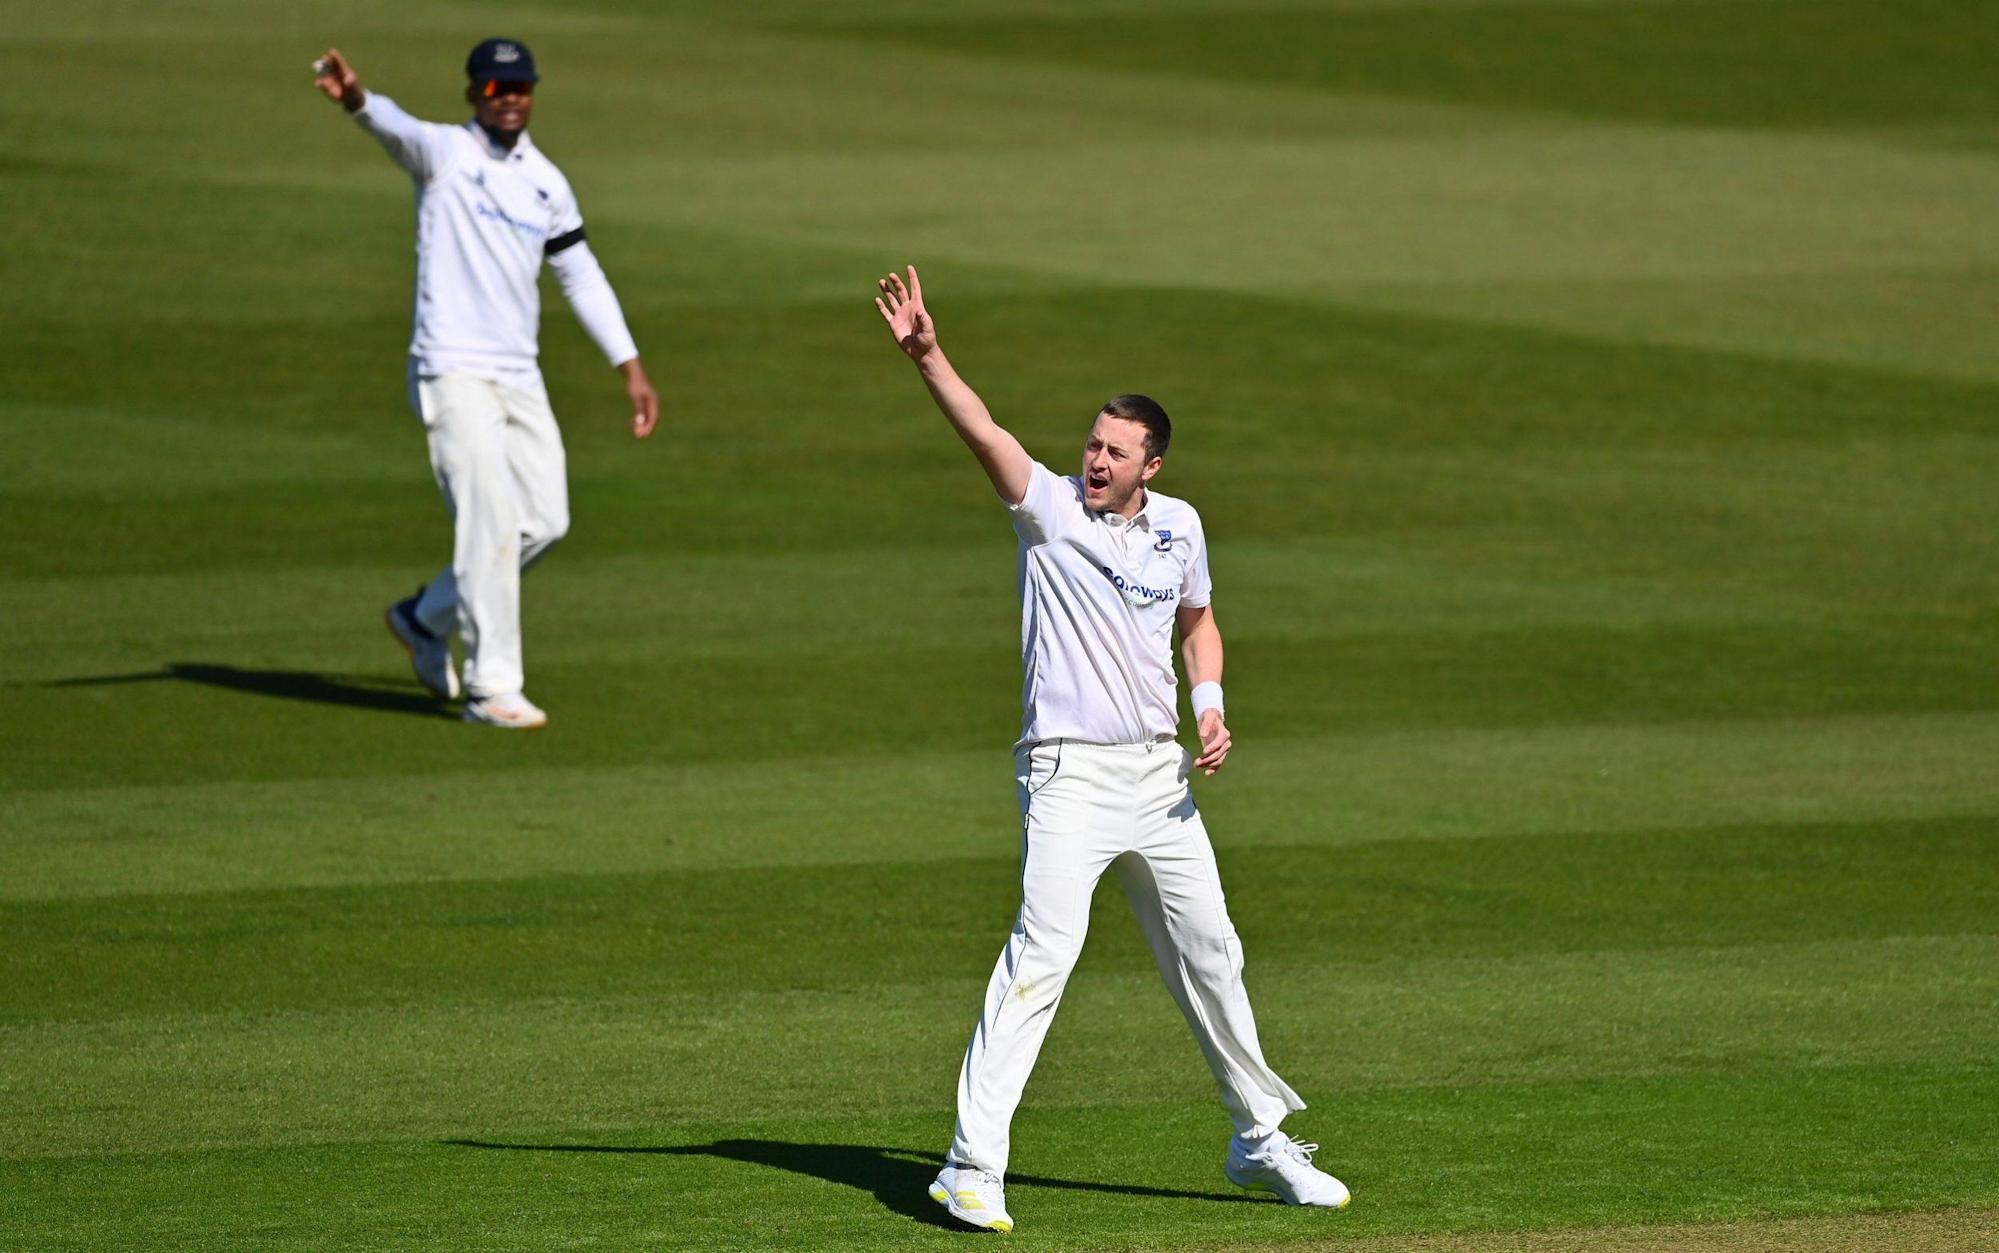 rising-star-ollie-robinson-impresses-with-four-wicket-haul-for-sussex-against-glamorgan